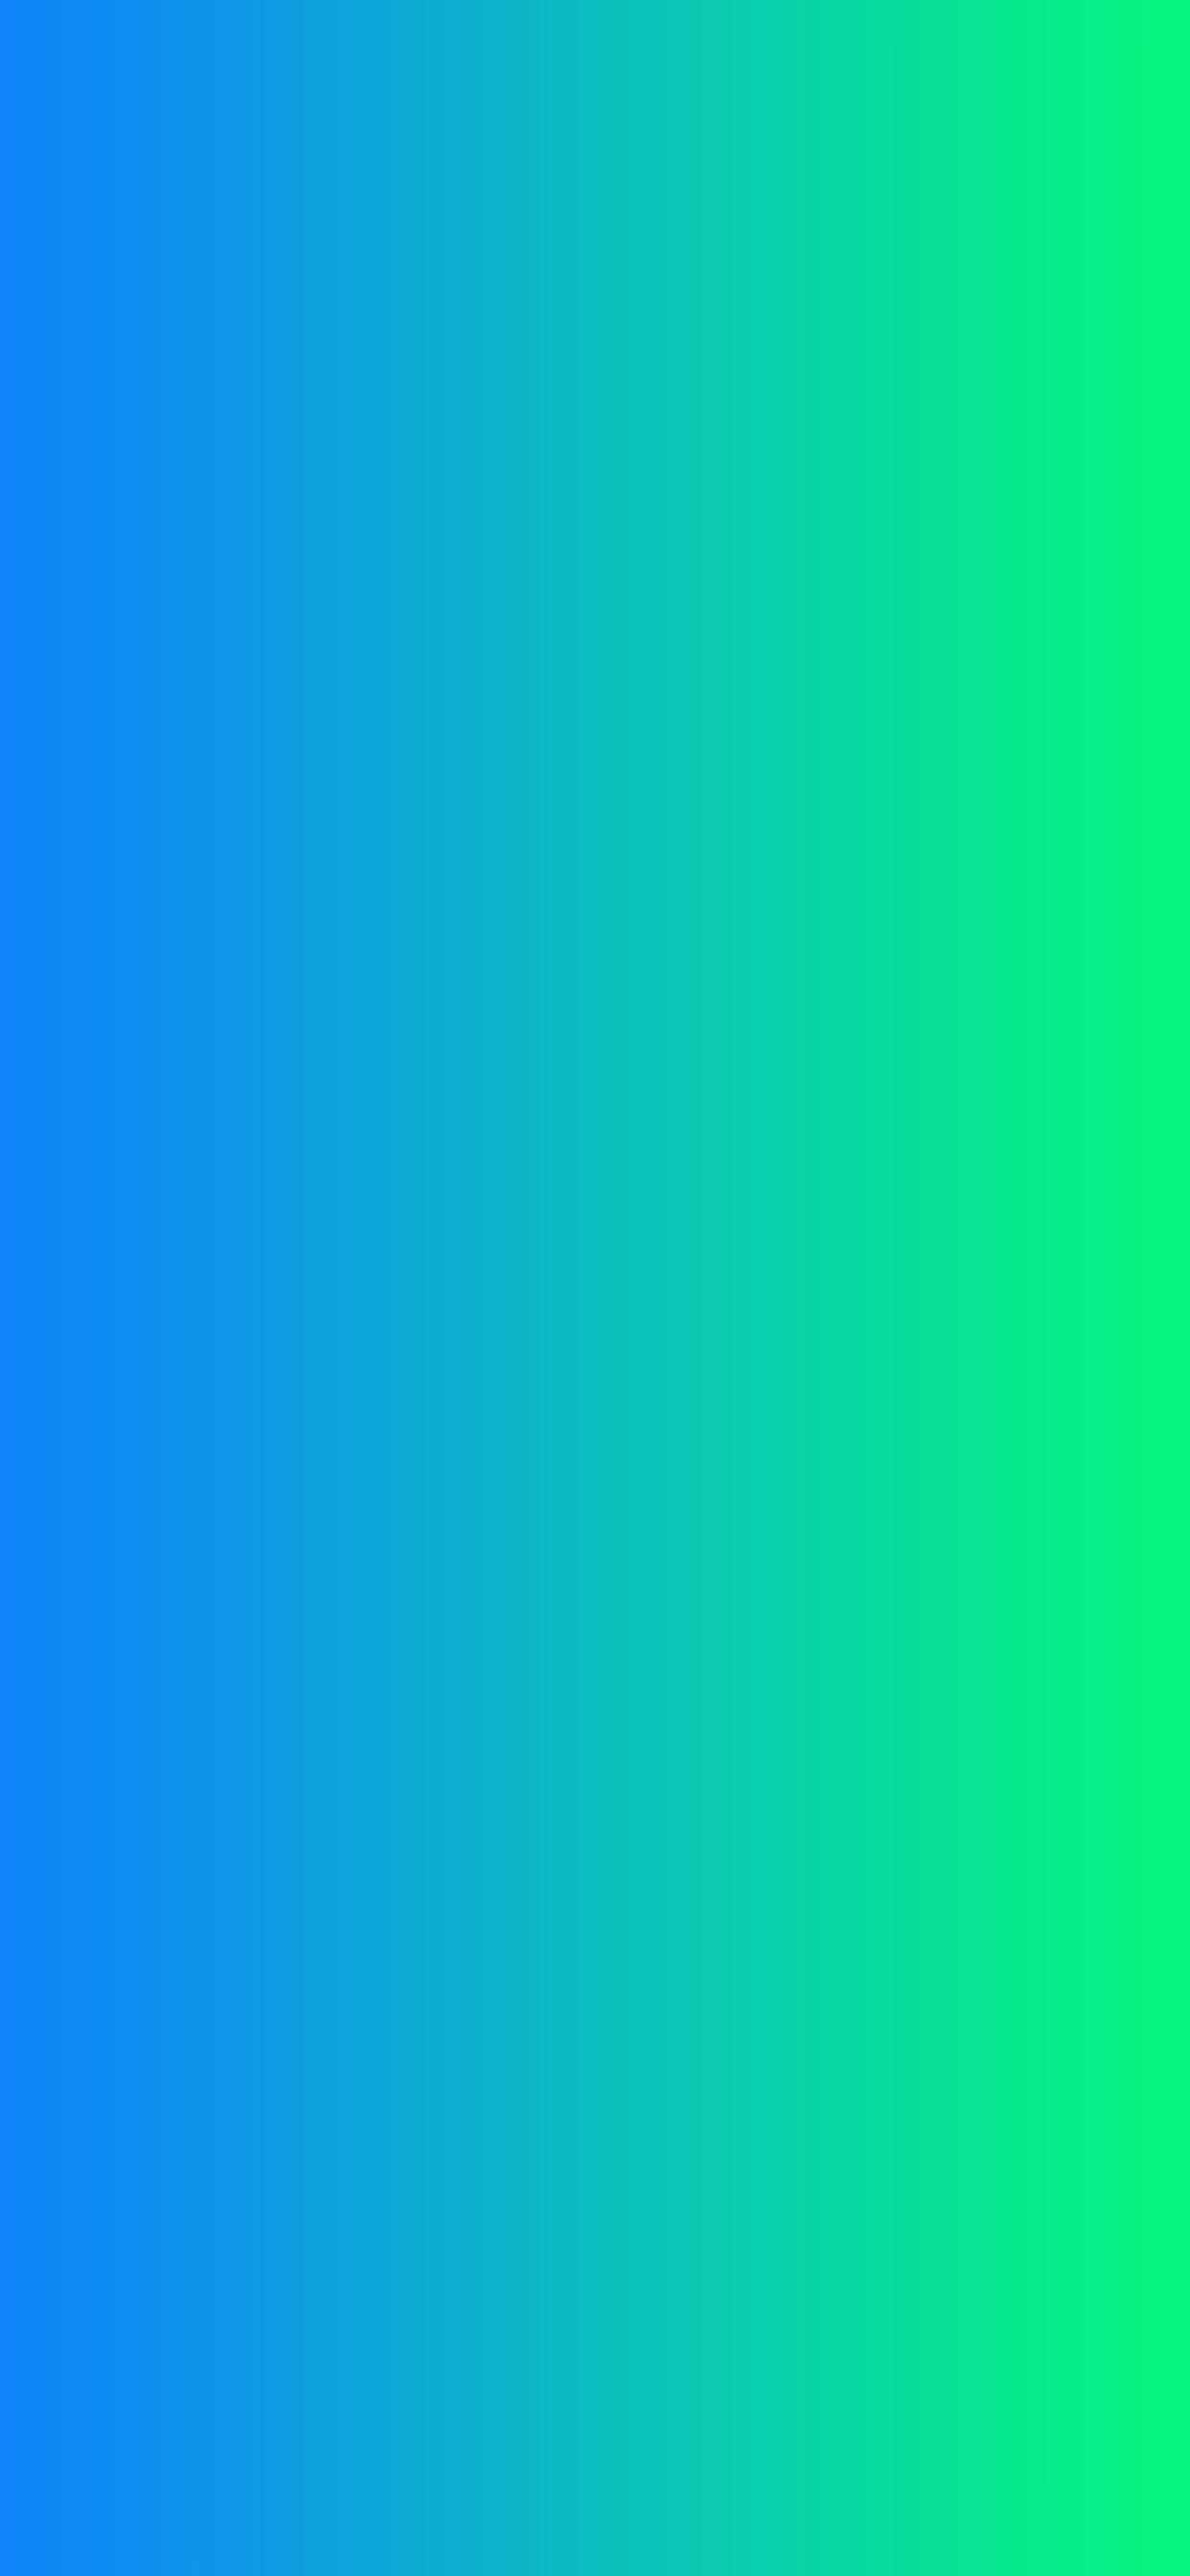 iPhone wallpaper gradient blue green Gradient colors